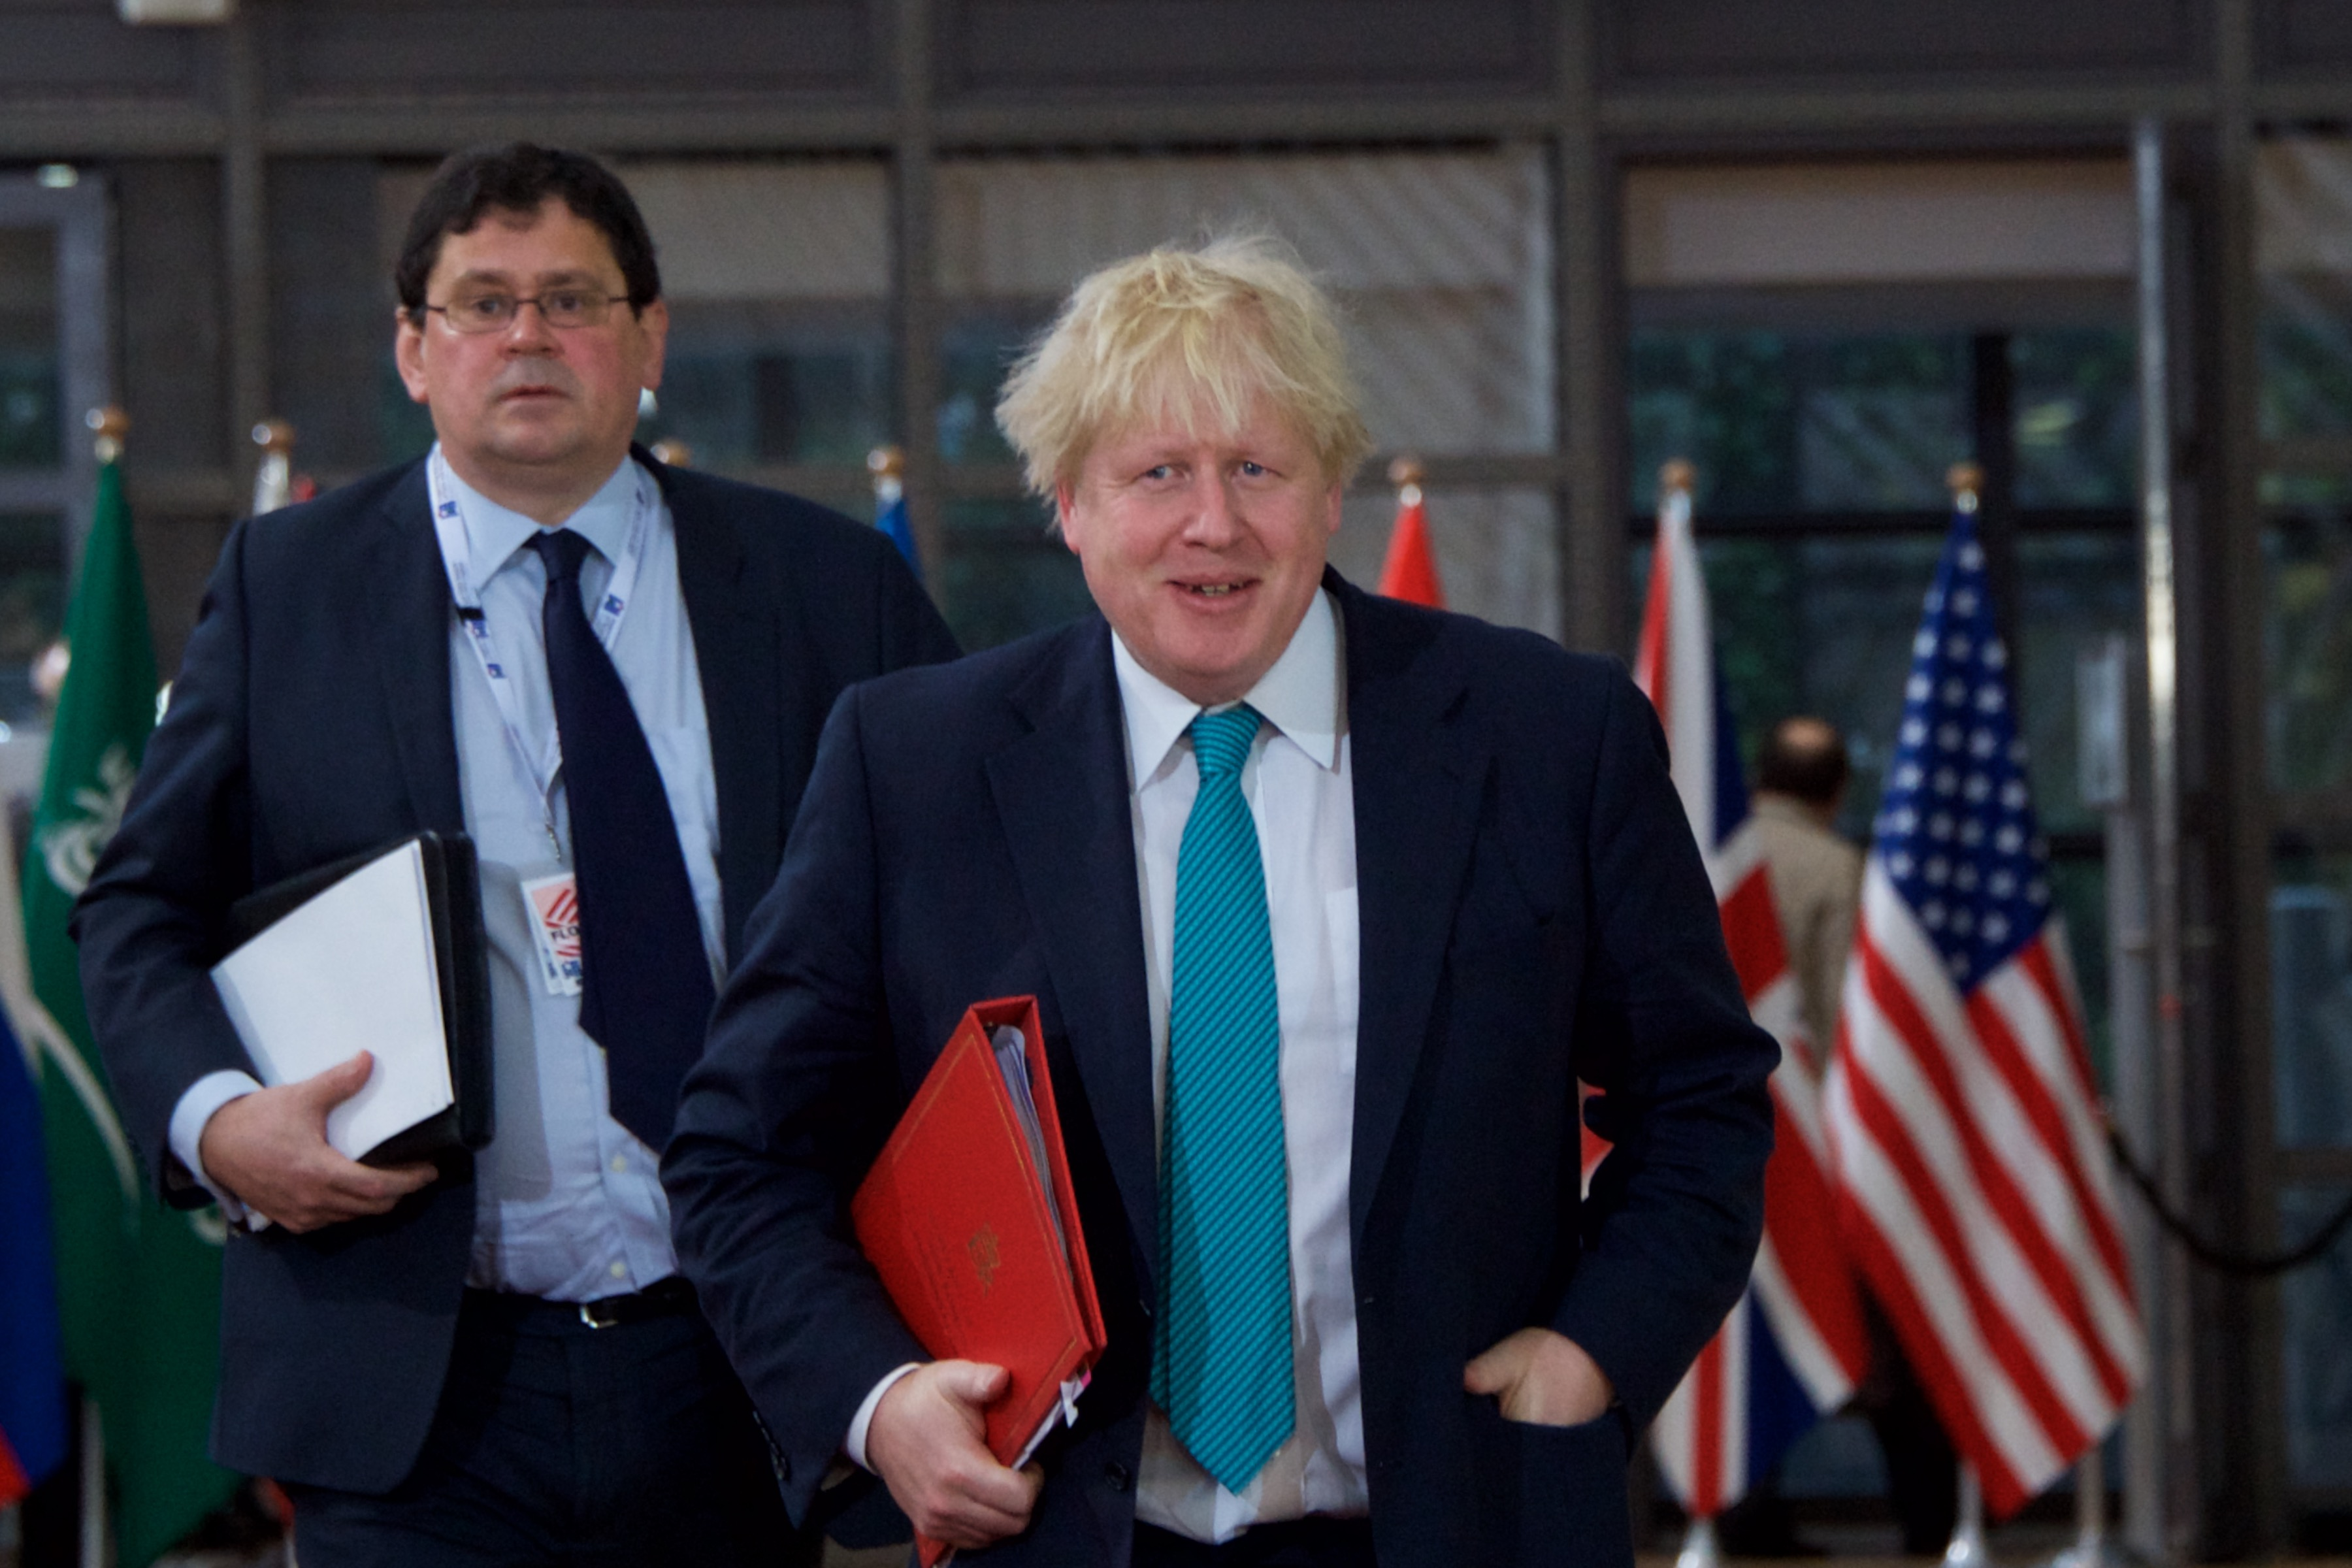 EU welcomes Johnson by rebuffing his Brexit plans